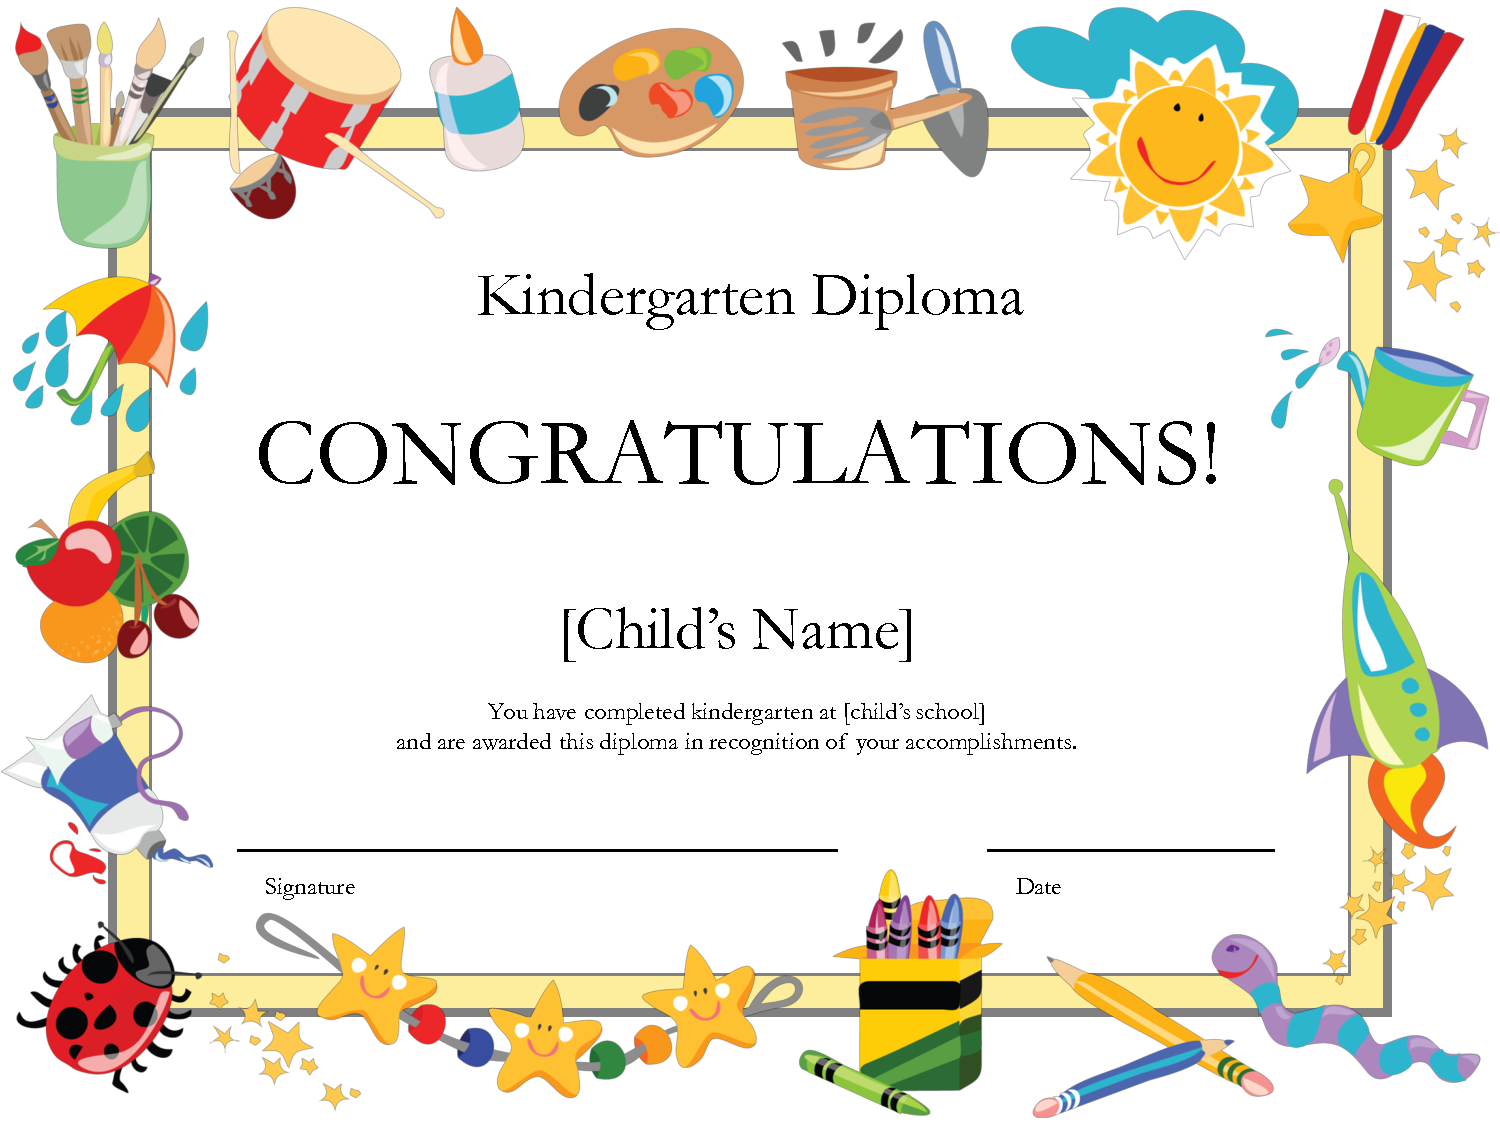 Free Printable Kindergarten Diplomaprintshowergames with regard to Free Printable Certificate Templates For Kids